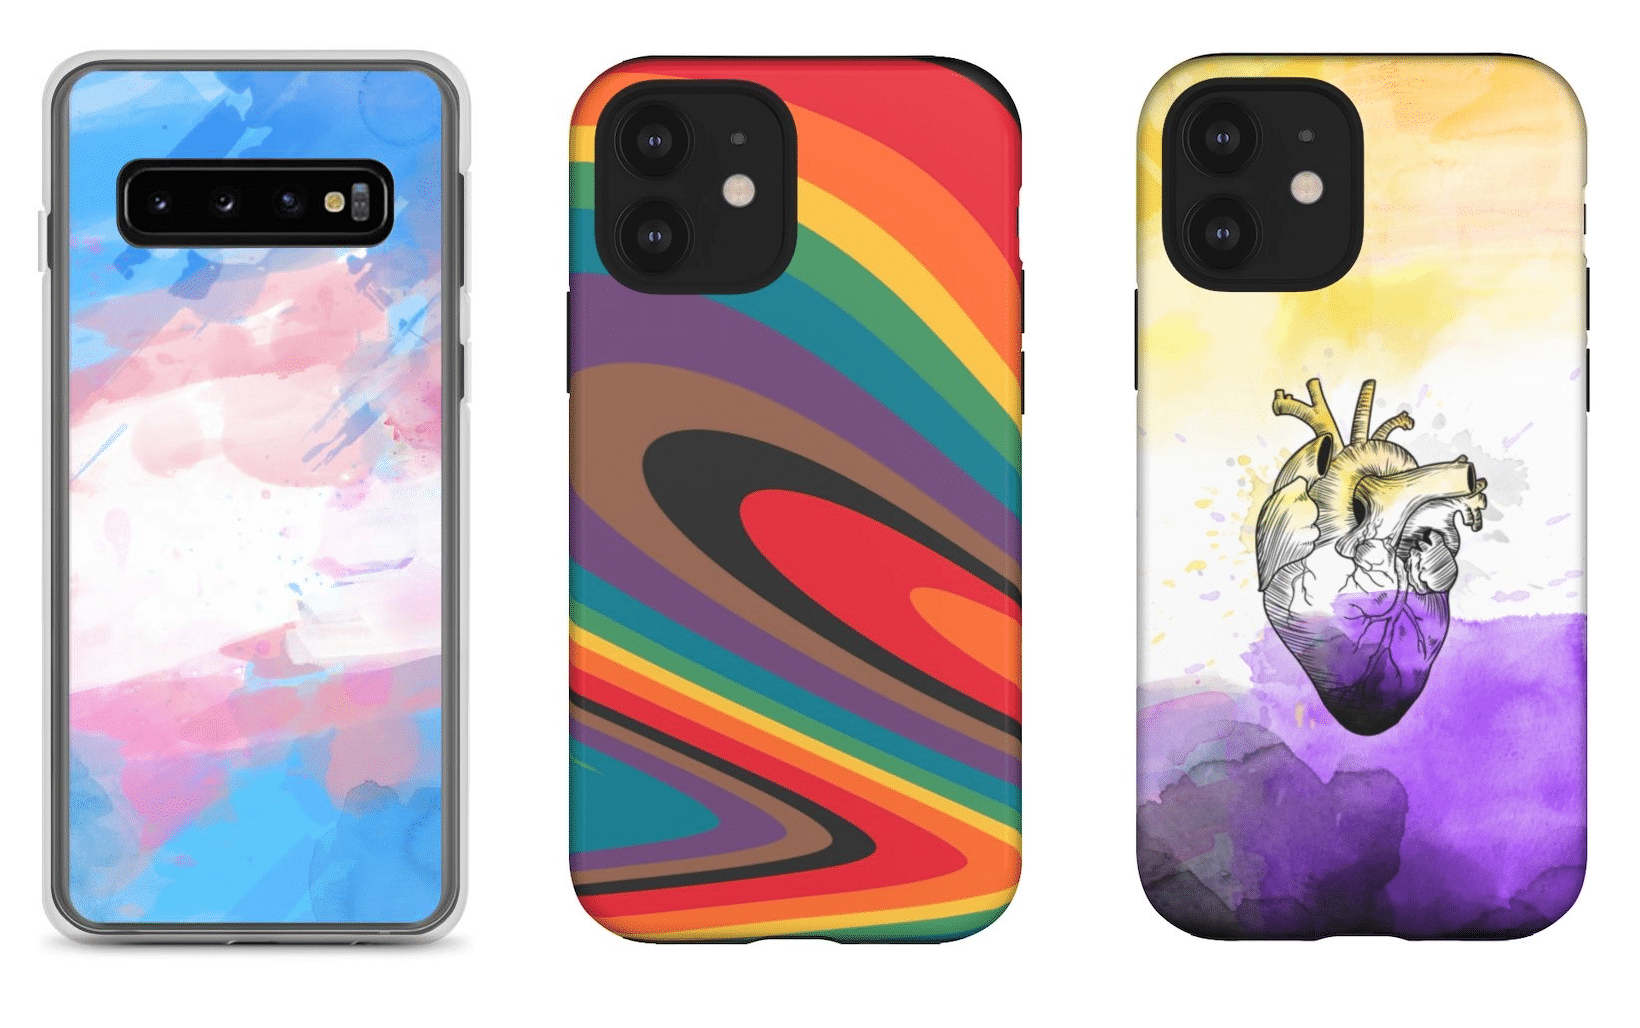 The phone case collection features designs with all the different pride flags. (PinkNews)